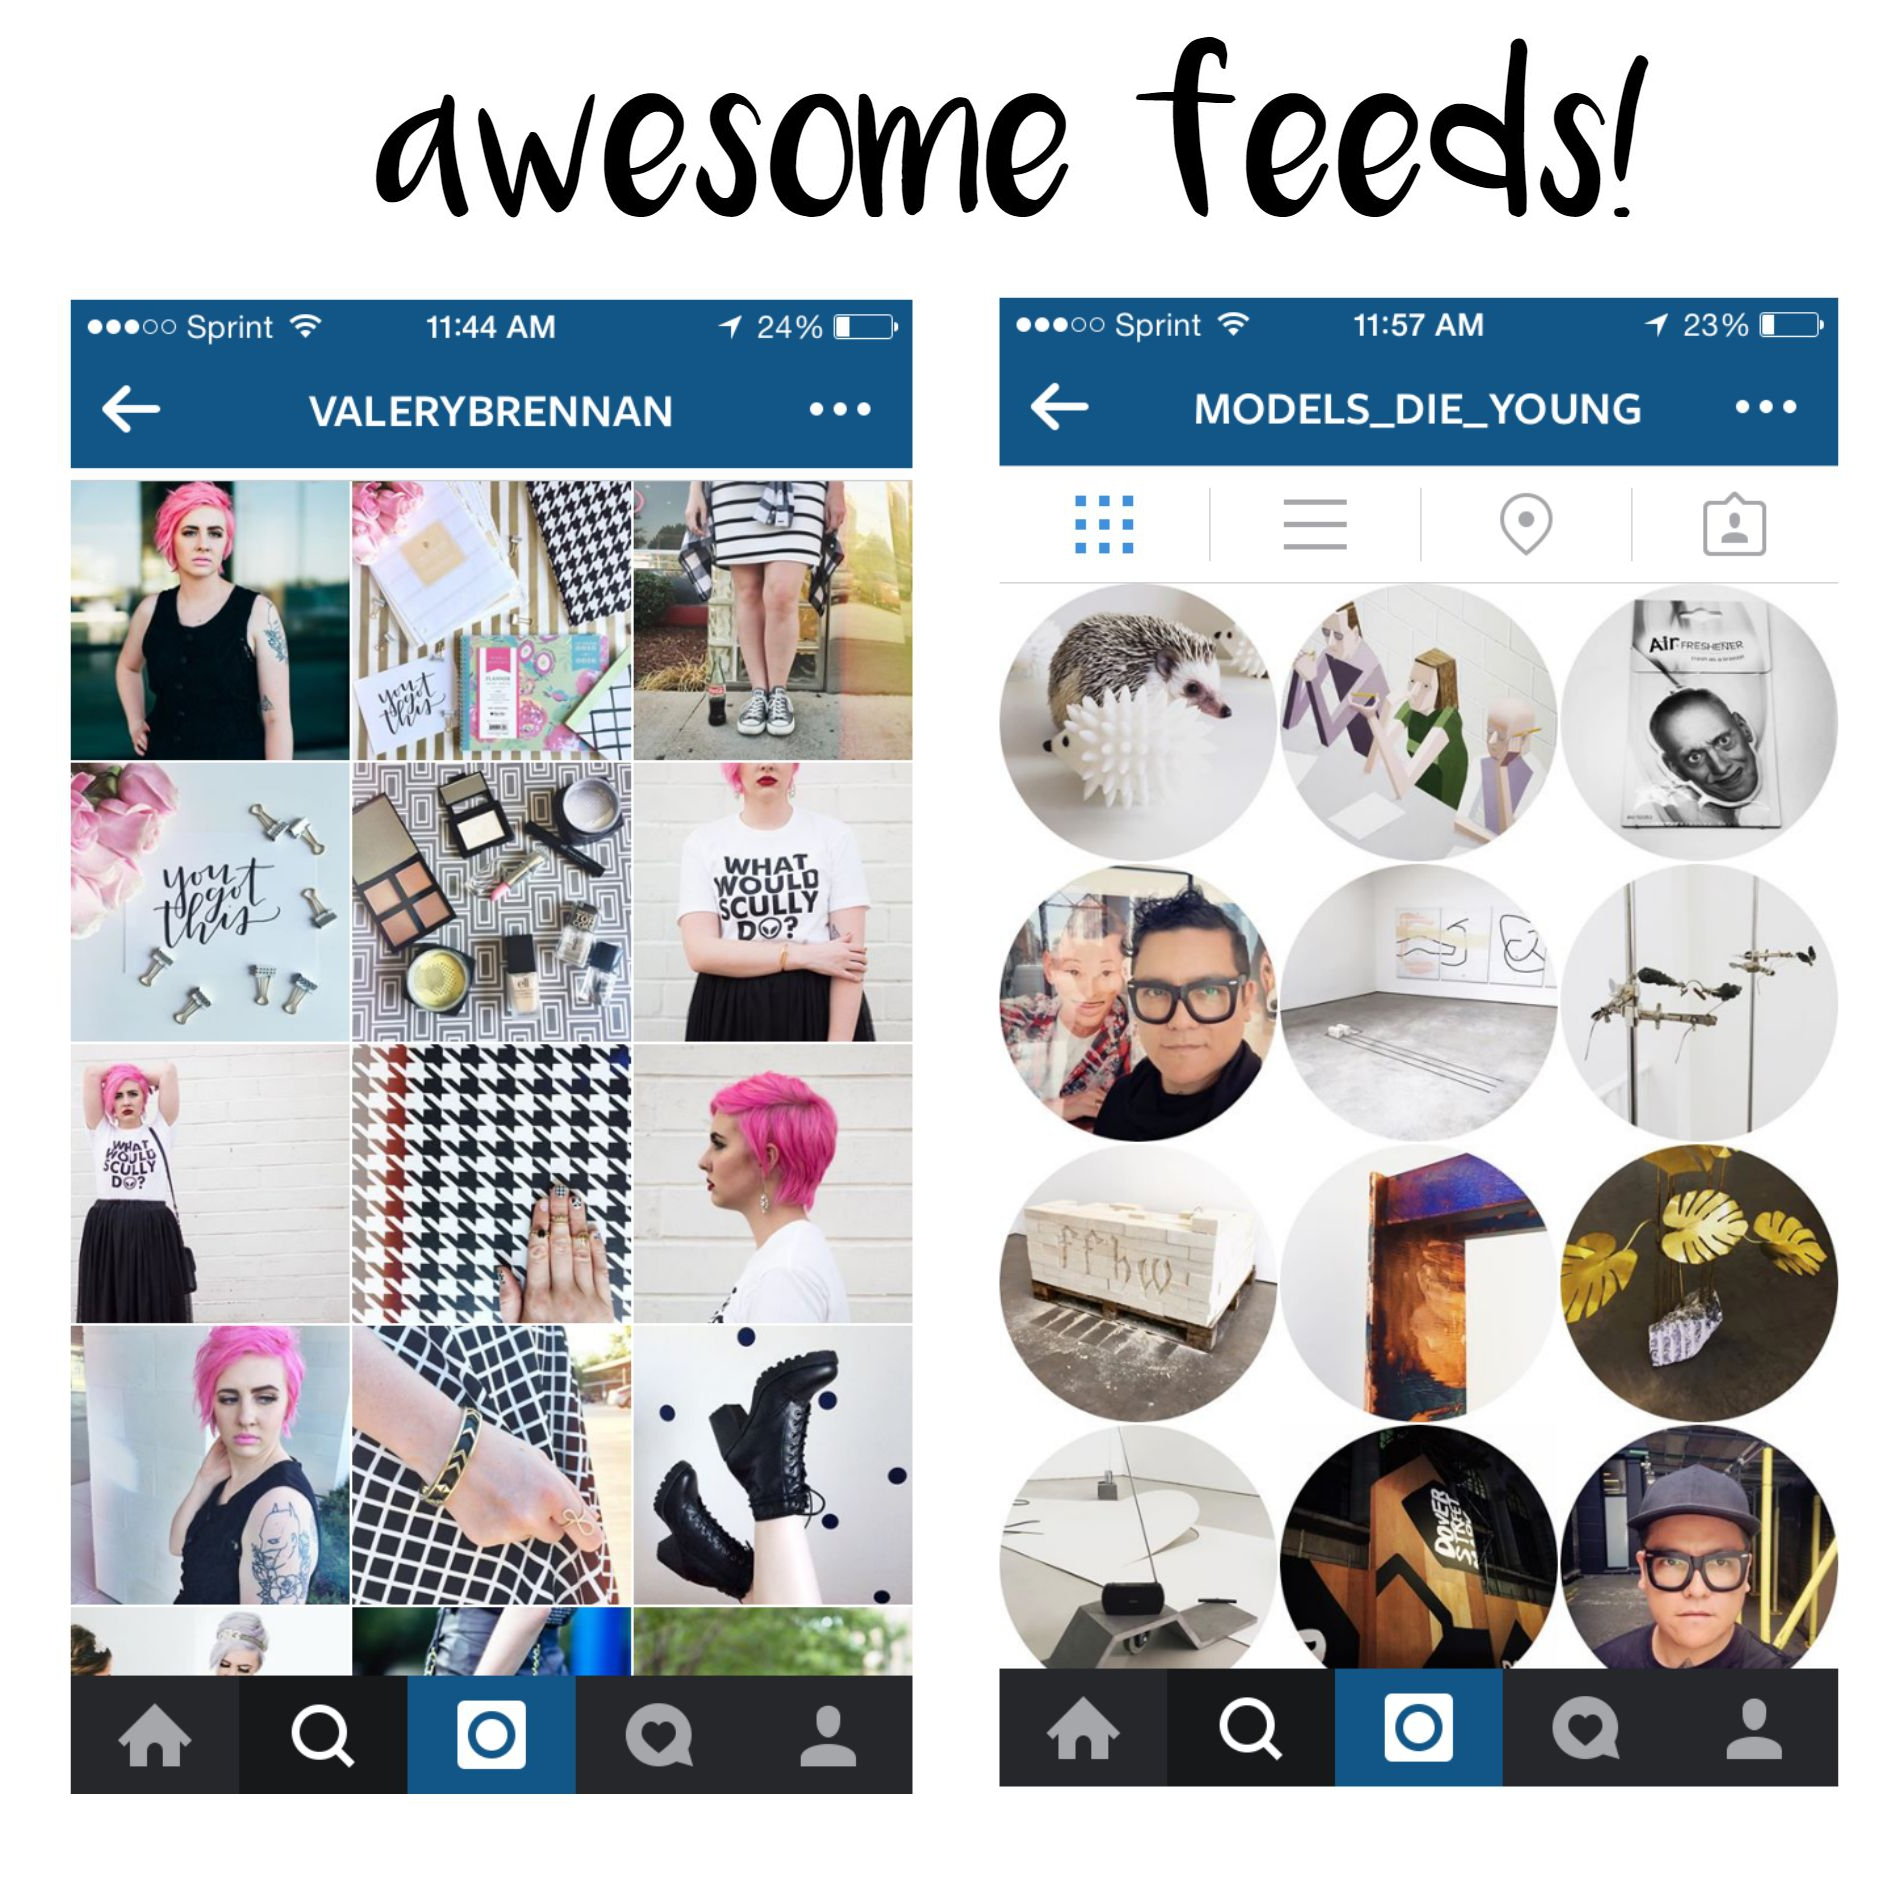 Feed your Instagram to other sites